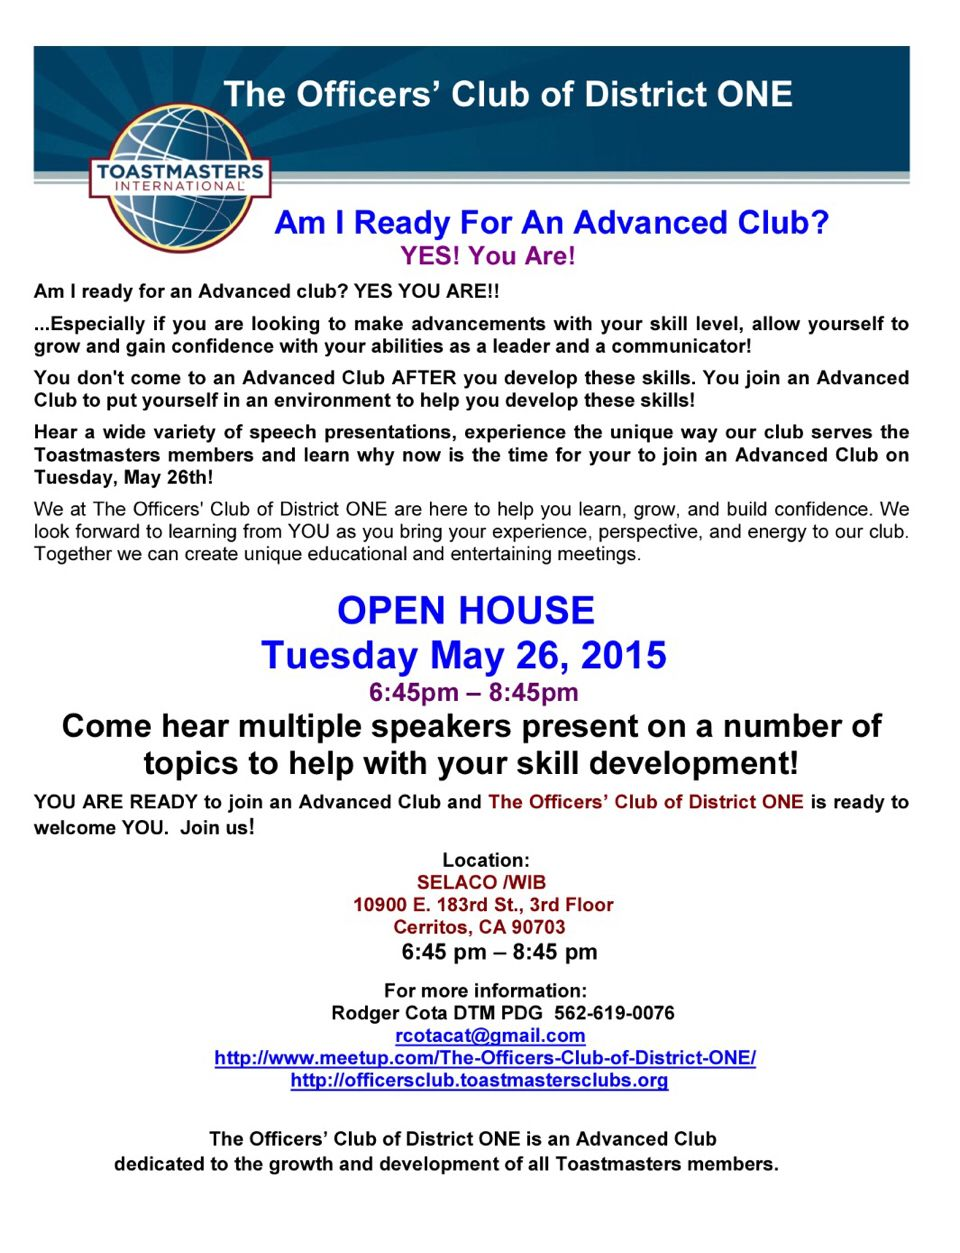 The Officer S Club Of District One S Open House On Tuesday May 26th To The District One Event Calendar So How To Gain Confidence Event Calendar Social Media